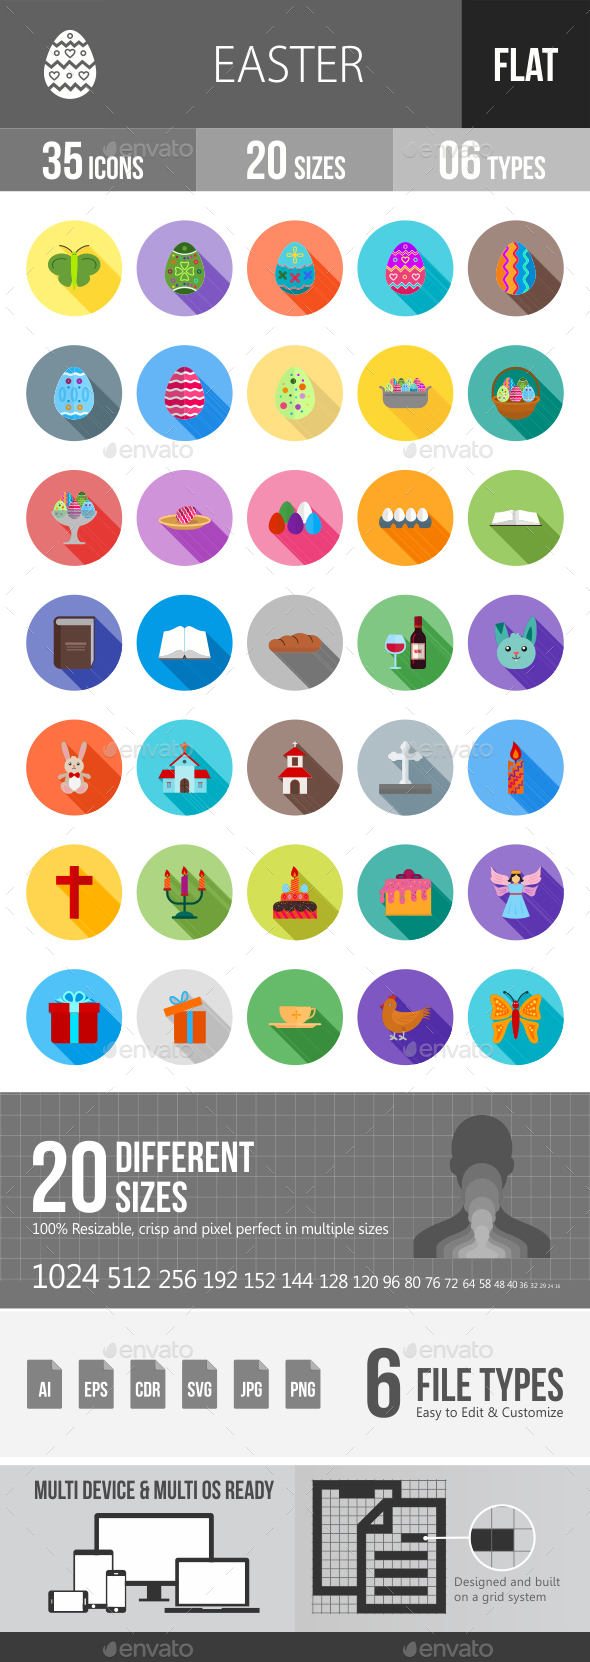 Easter Flat Shadowed Icons - Icons